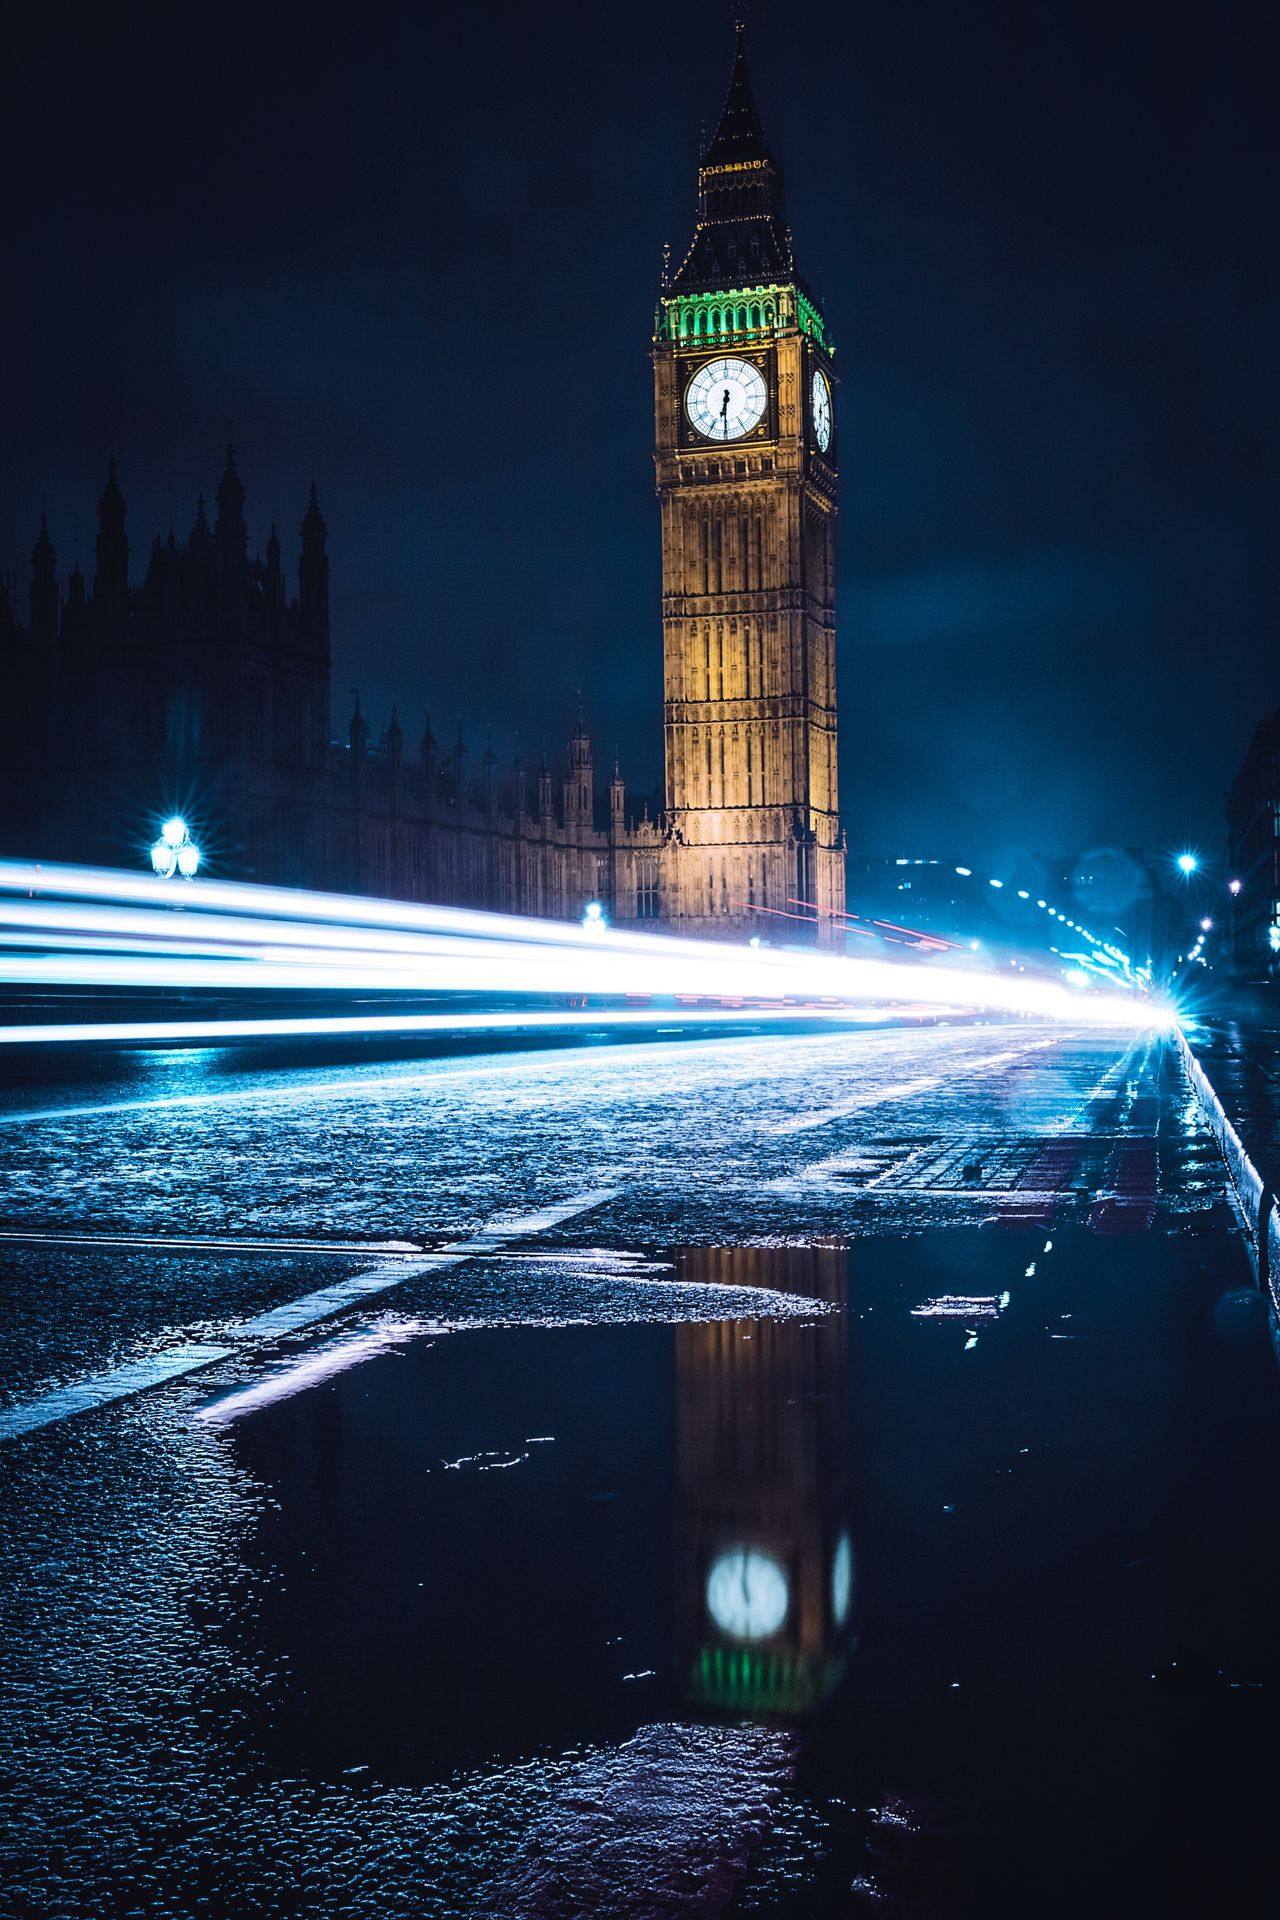 Night Illuminated Long Exposure Clock Clock Tower Architecture Building Exterior Travel Destinations Tower Built Structure No People Time Outdoors City Cultures Sky Midnight London Cityscape Urban Skyline